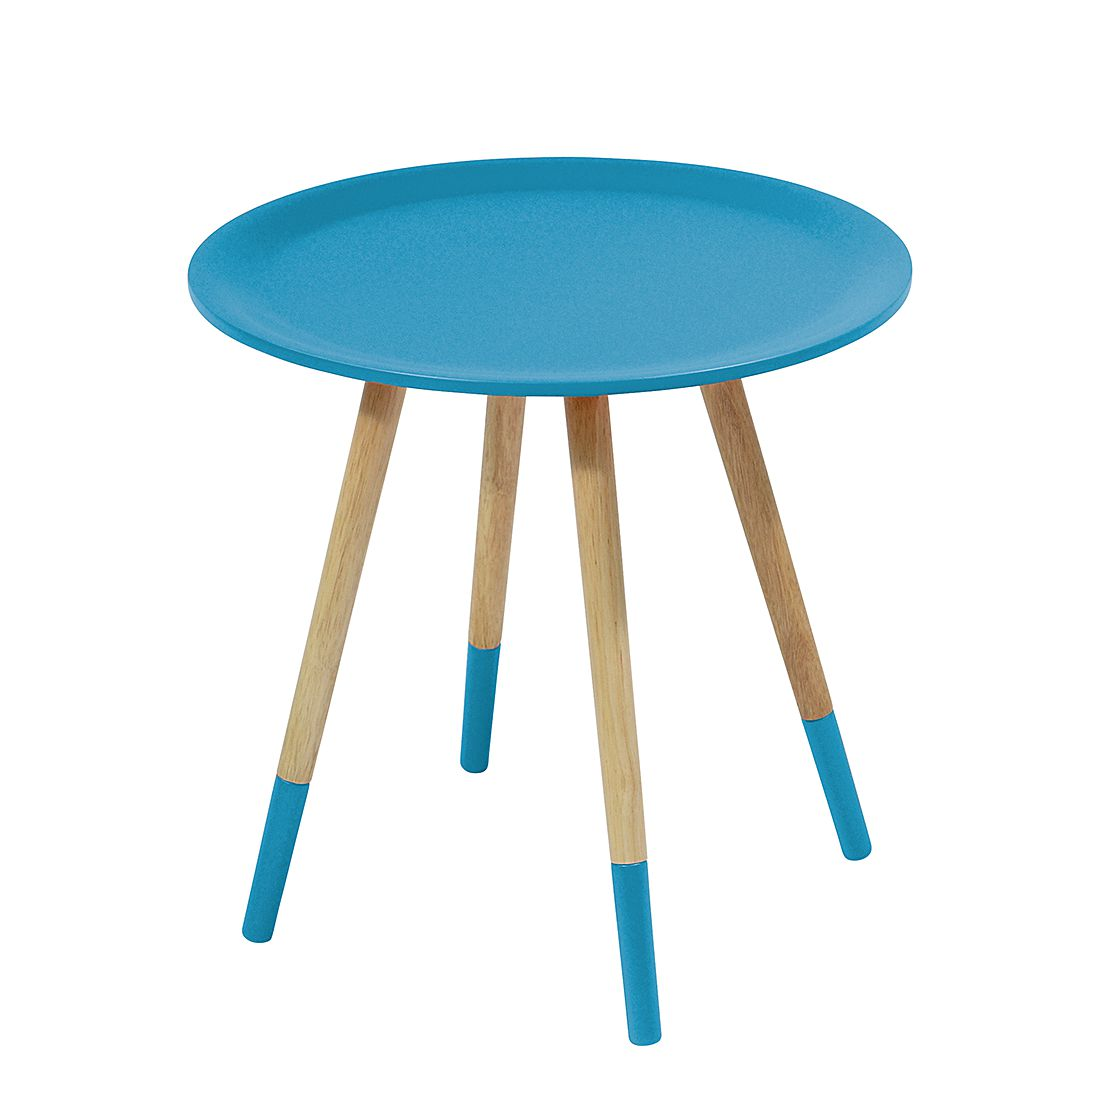 Table d'appoint Two Tone - Bleu, Zuiver